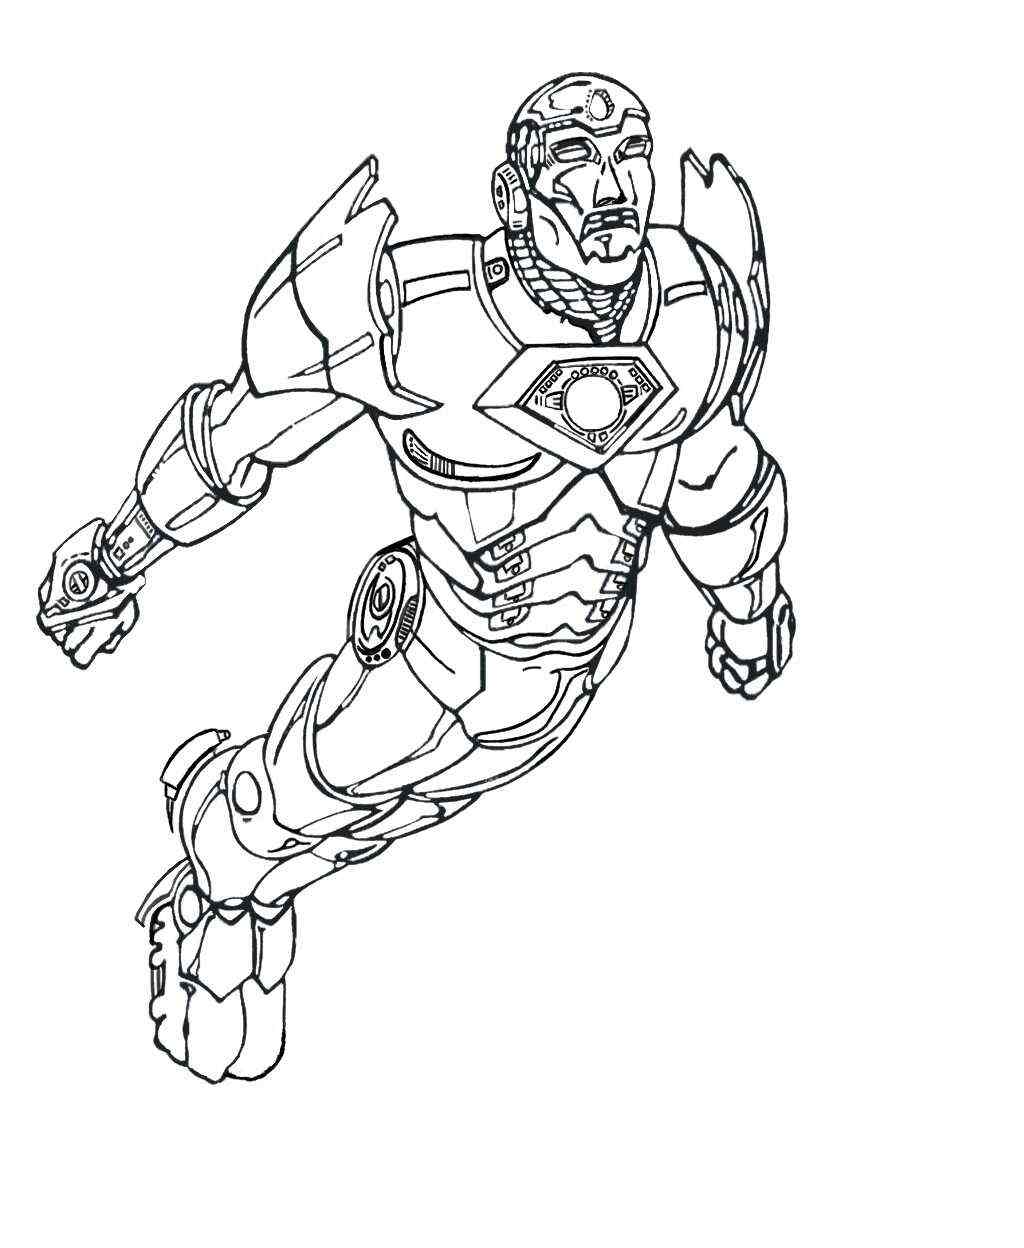 Iron man fly up to the sky Coloring Pages   Avengers Coloring ...